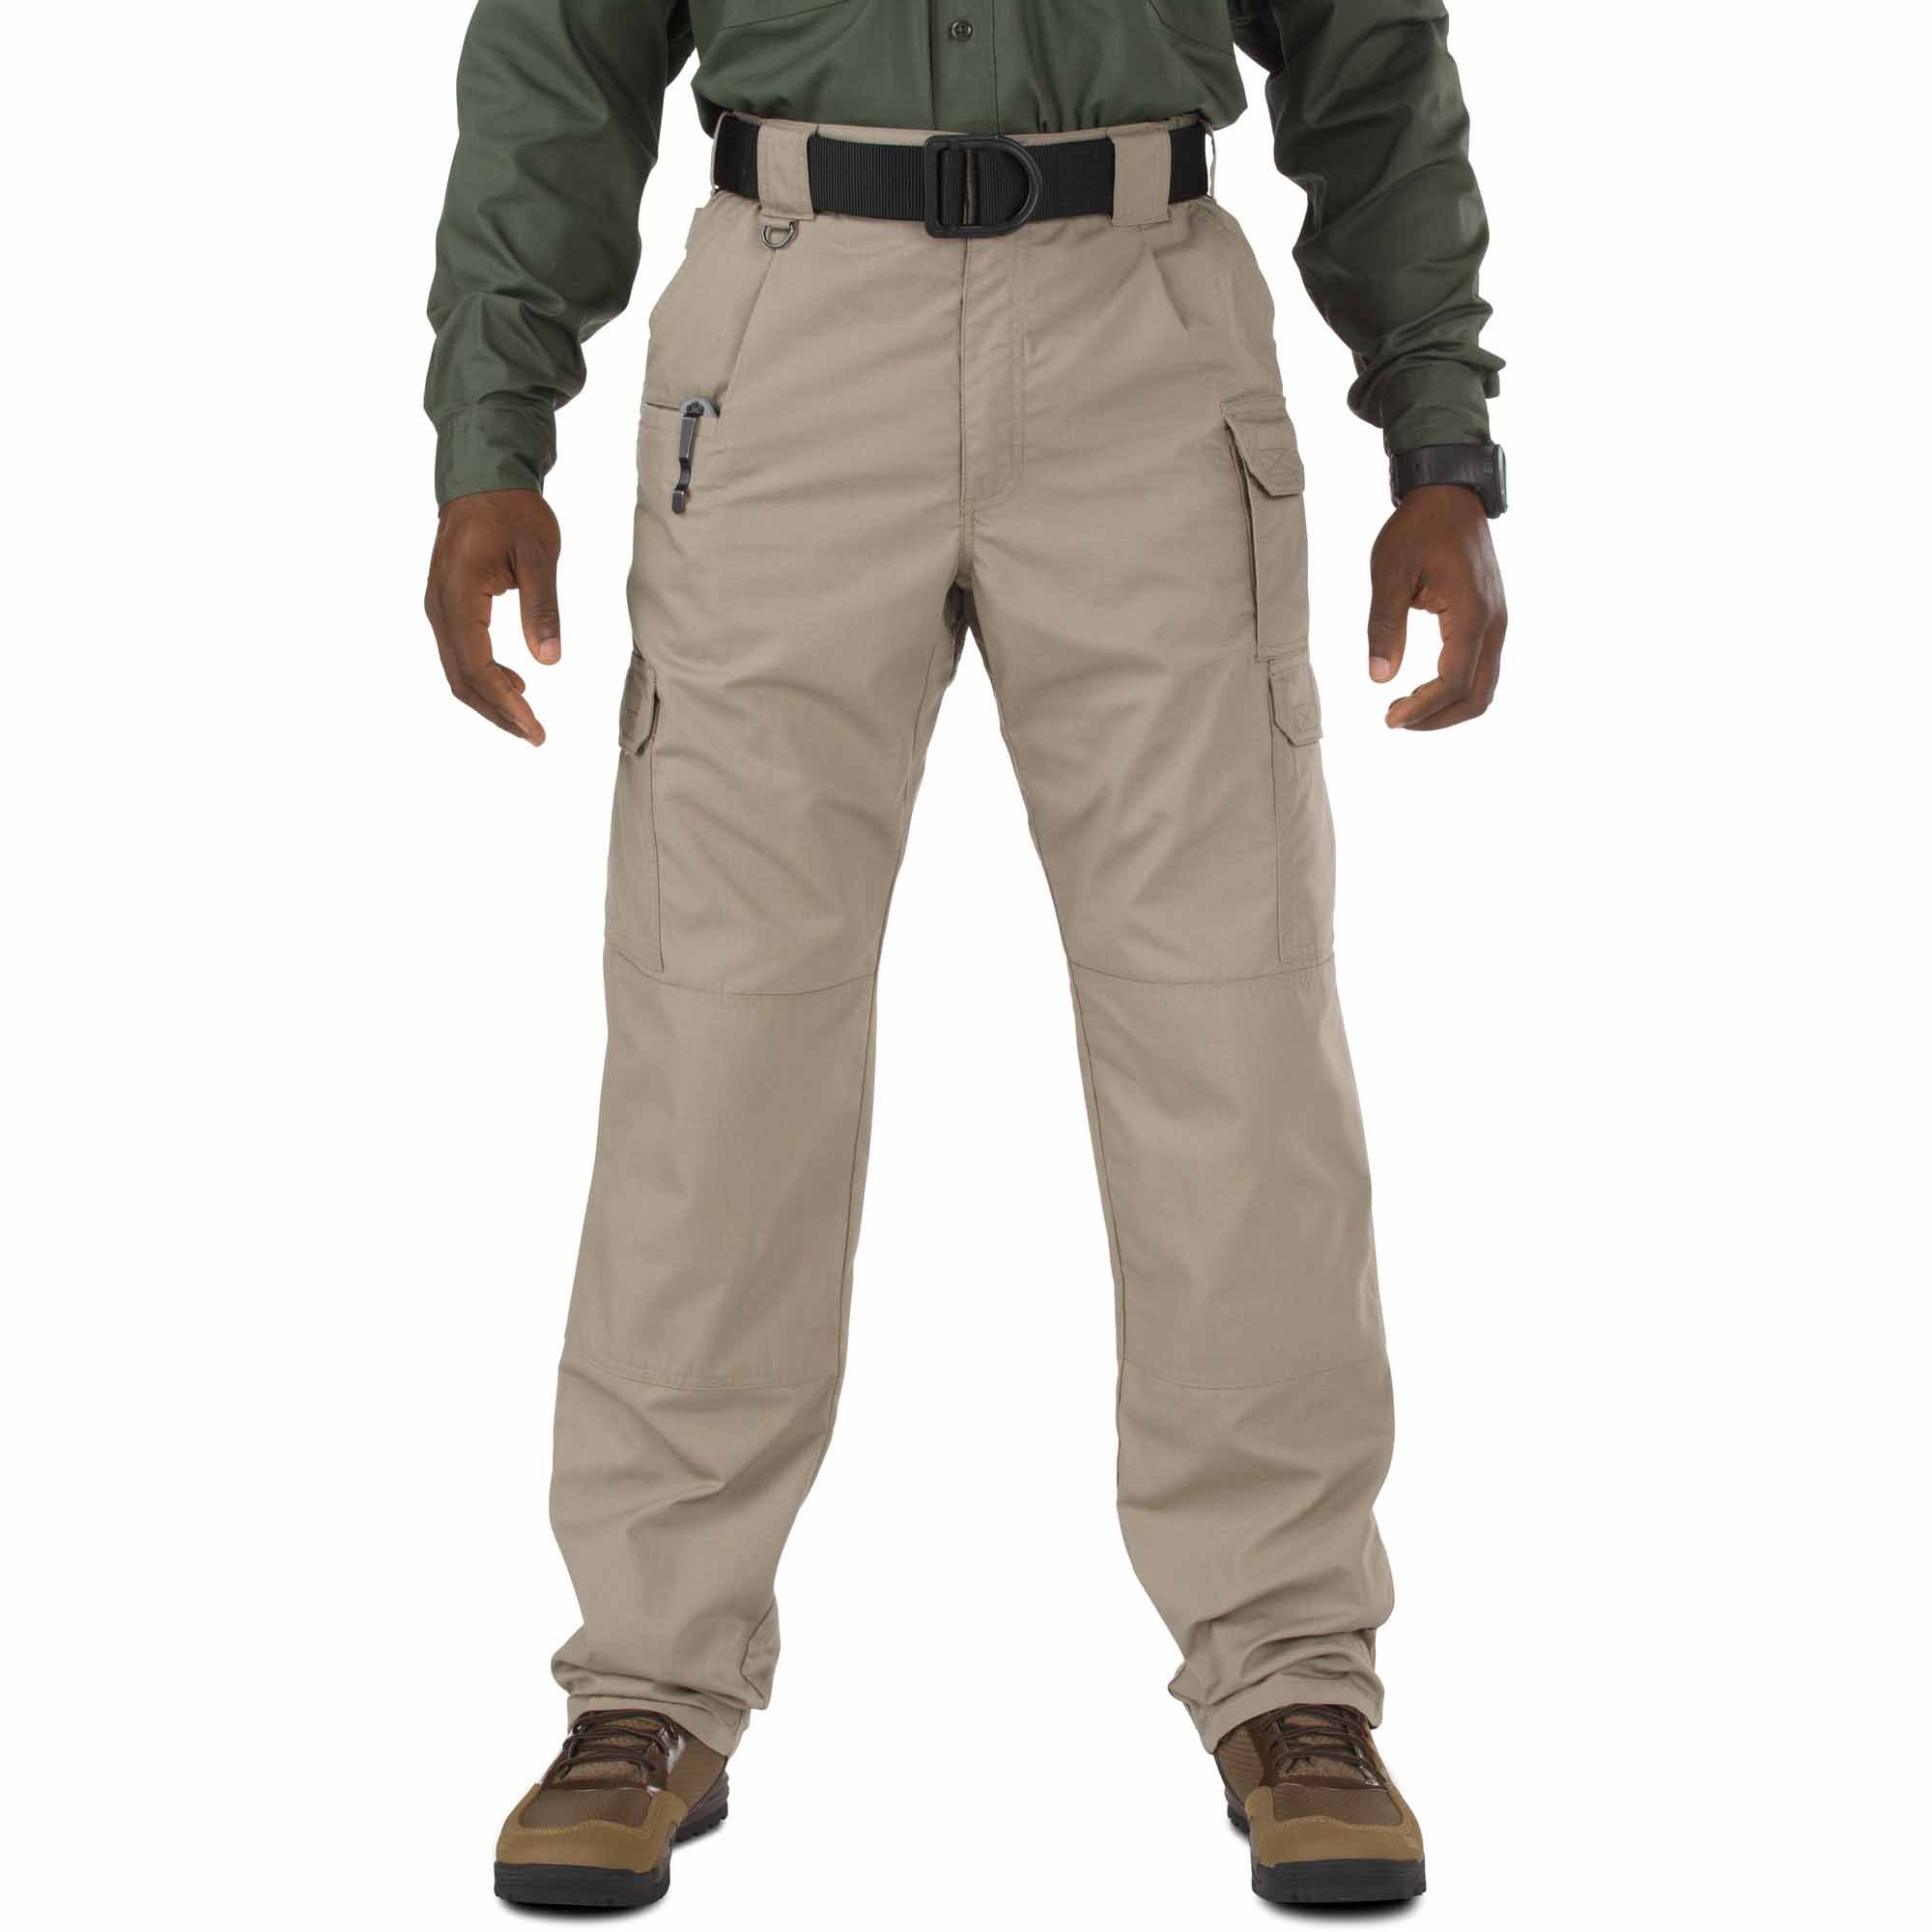 5.11 Men's TACLITE Pro Tactical Pants, Style 74273, Stone, 32Wx34L by 5.11 (Image #4)